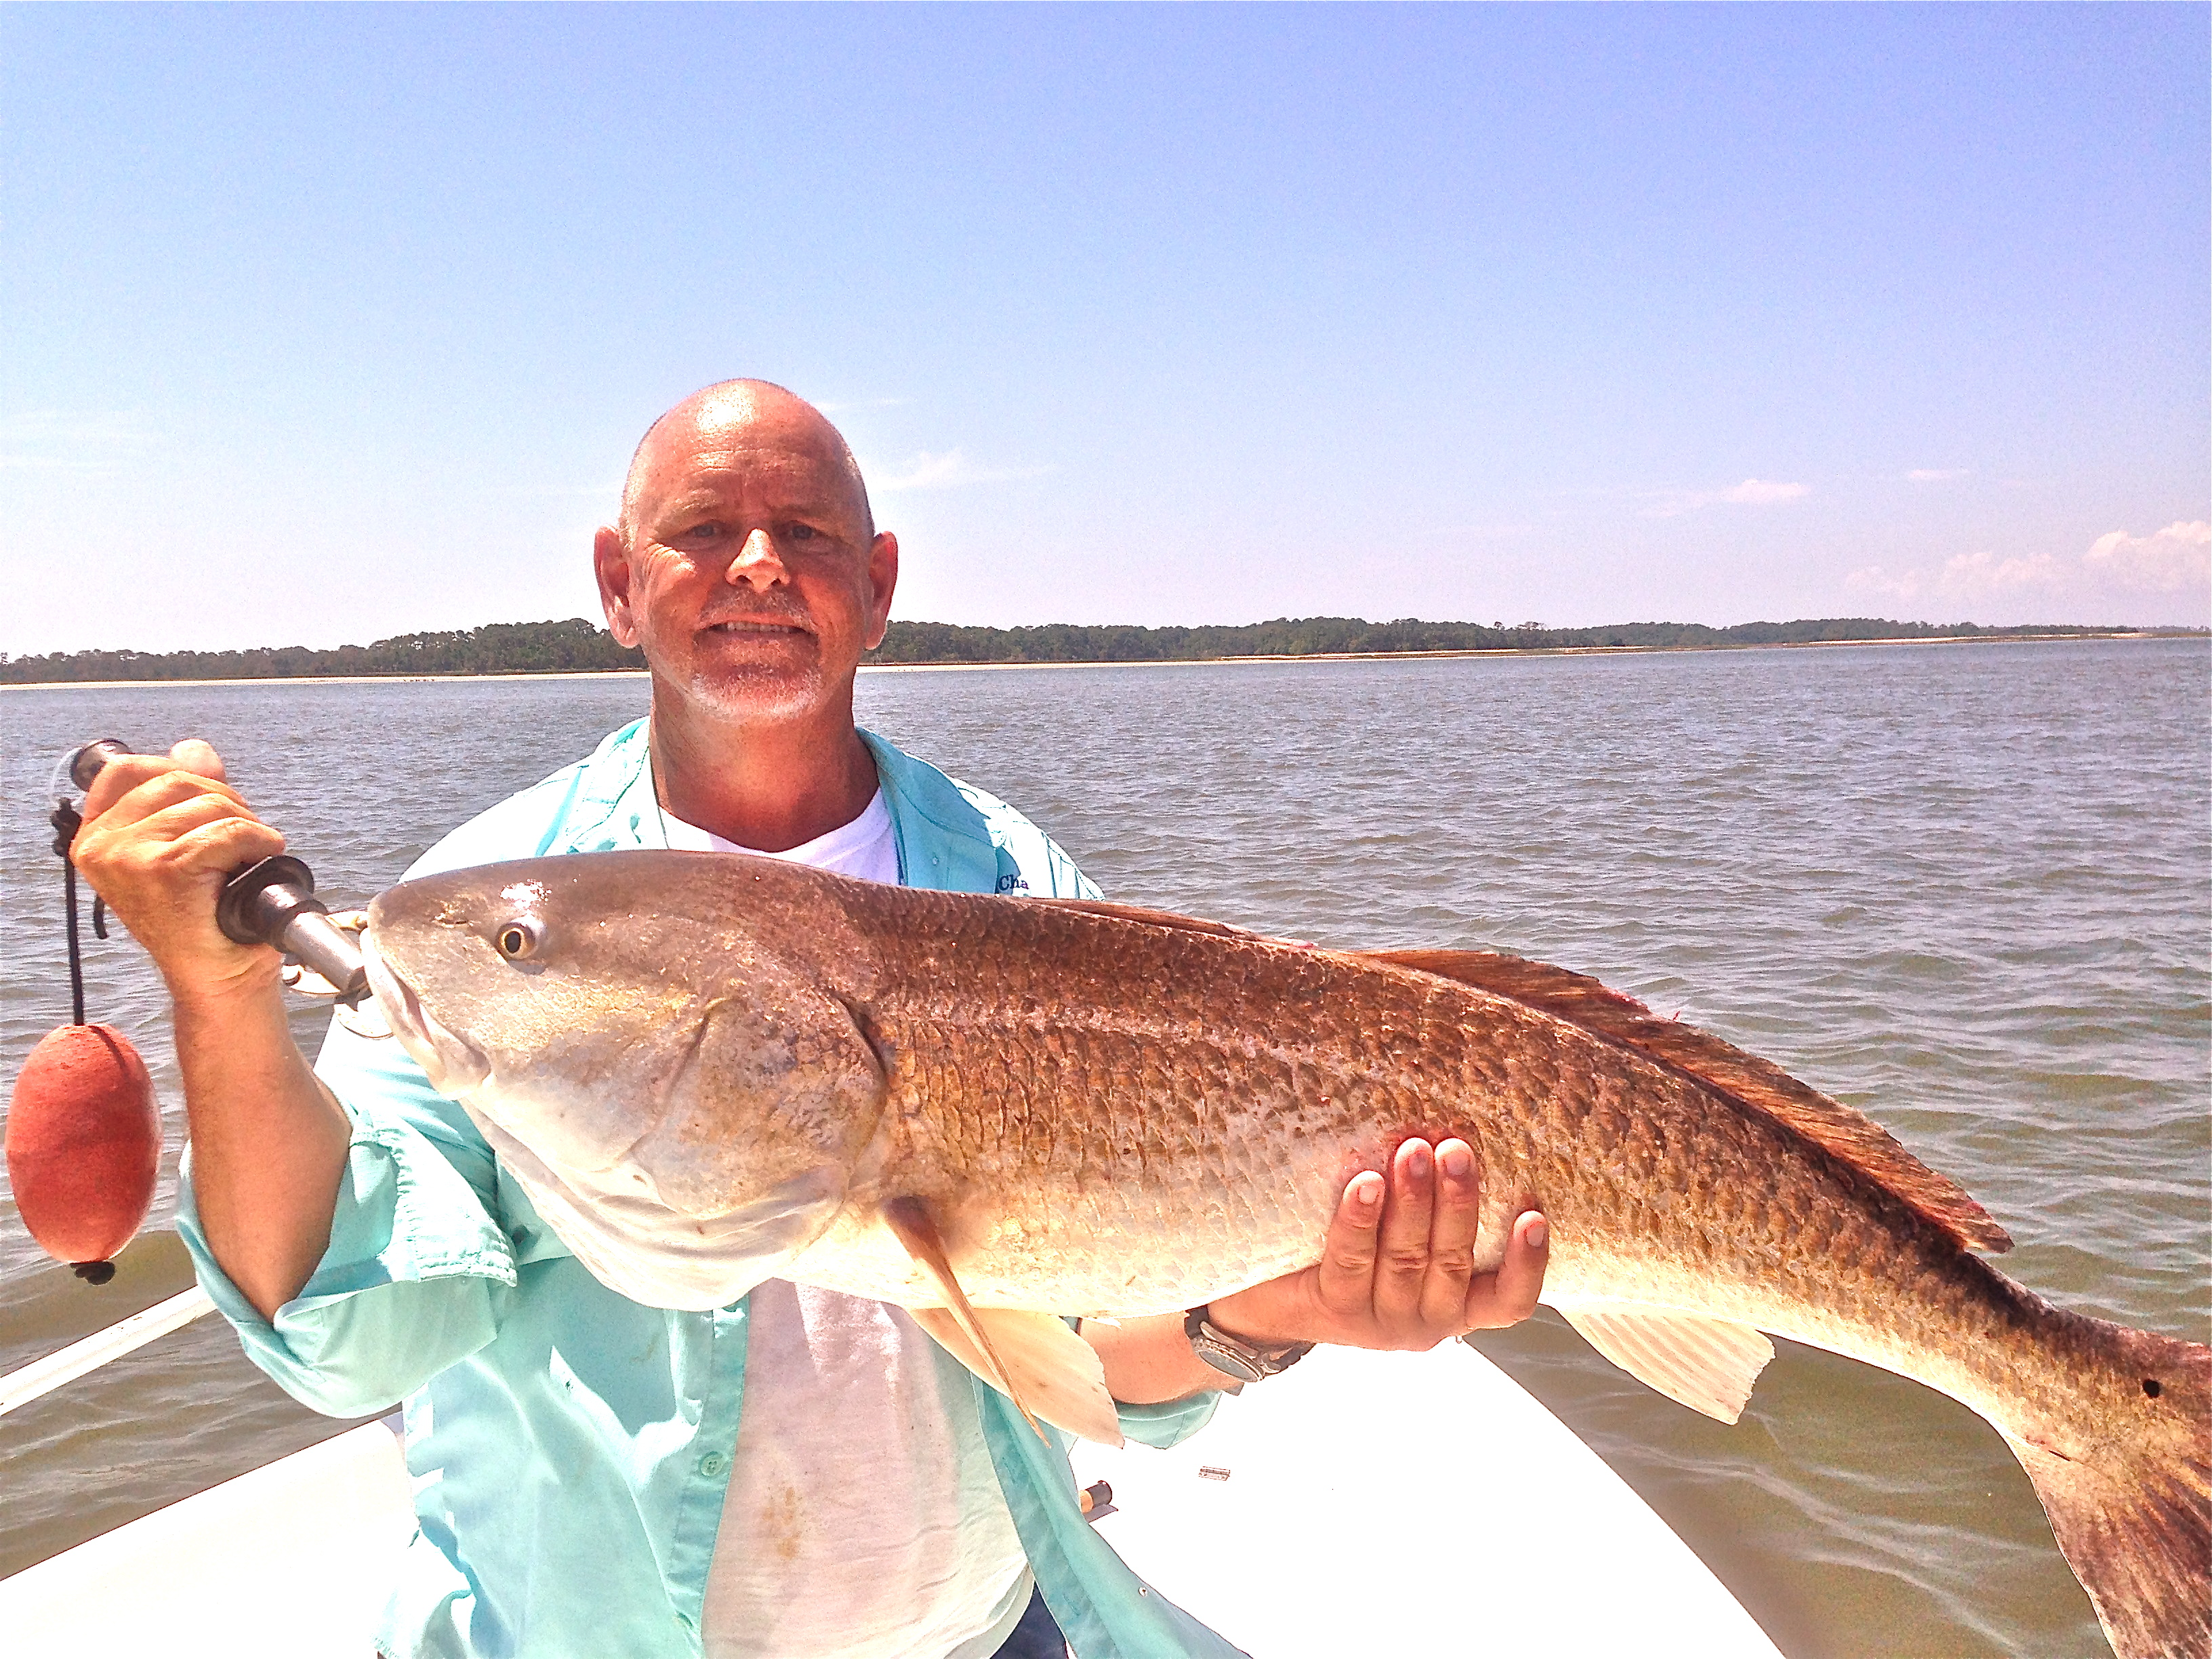 Capt. Jack on a sunny day with a large red drum!